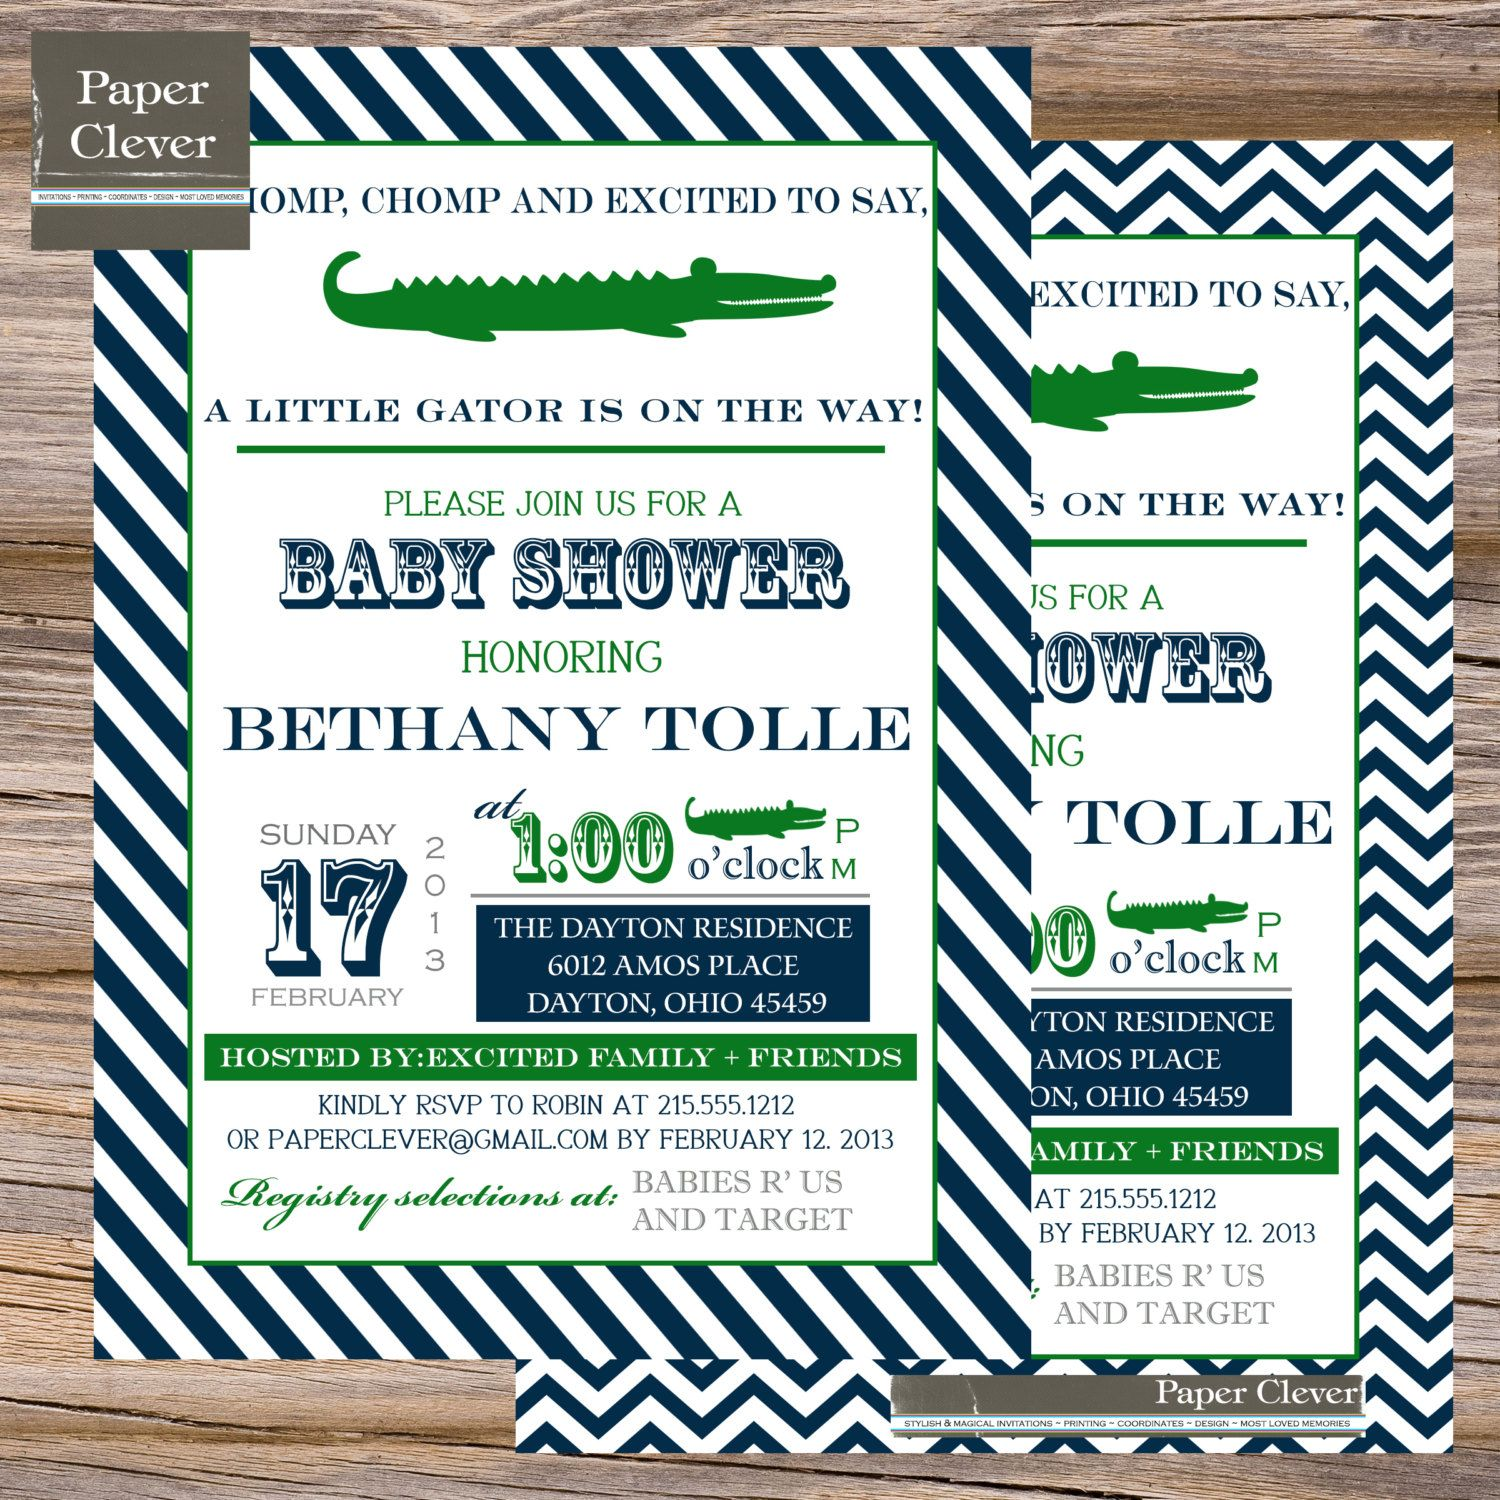 Boys baby shower invitation alligator vintage by paperclever, $13.00 ...